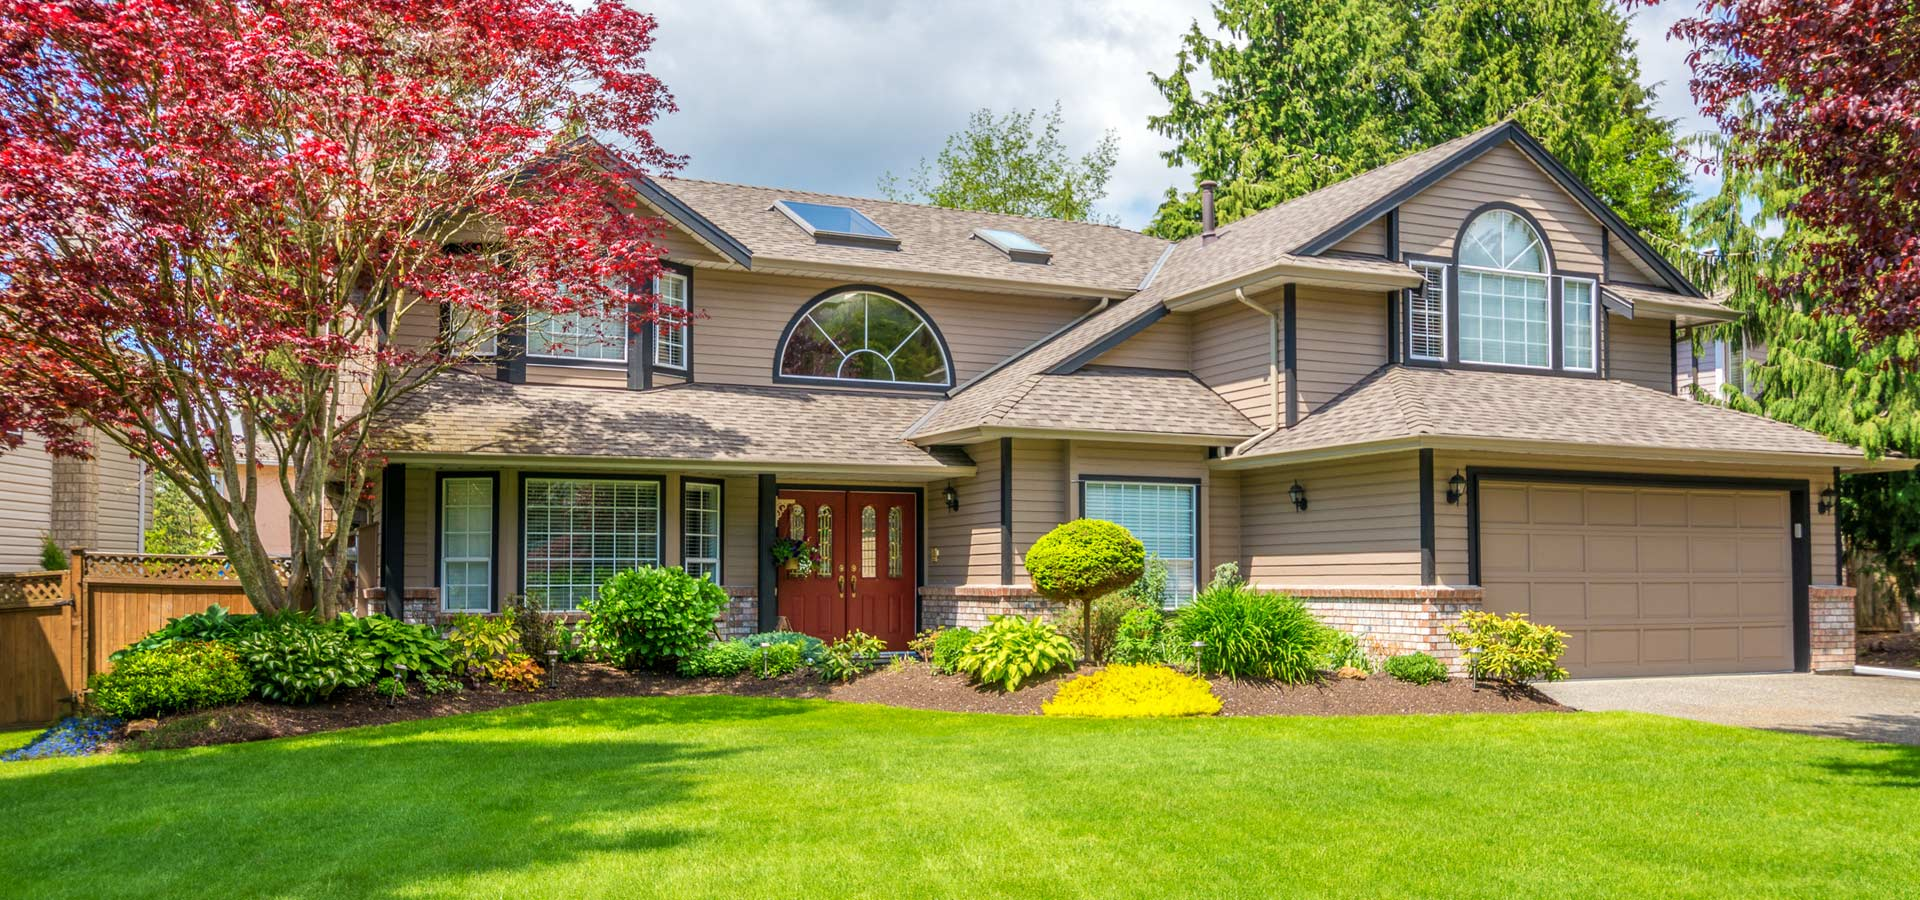 Luxury House Home Inspection